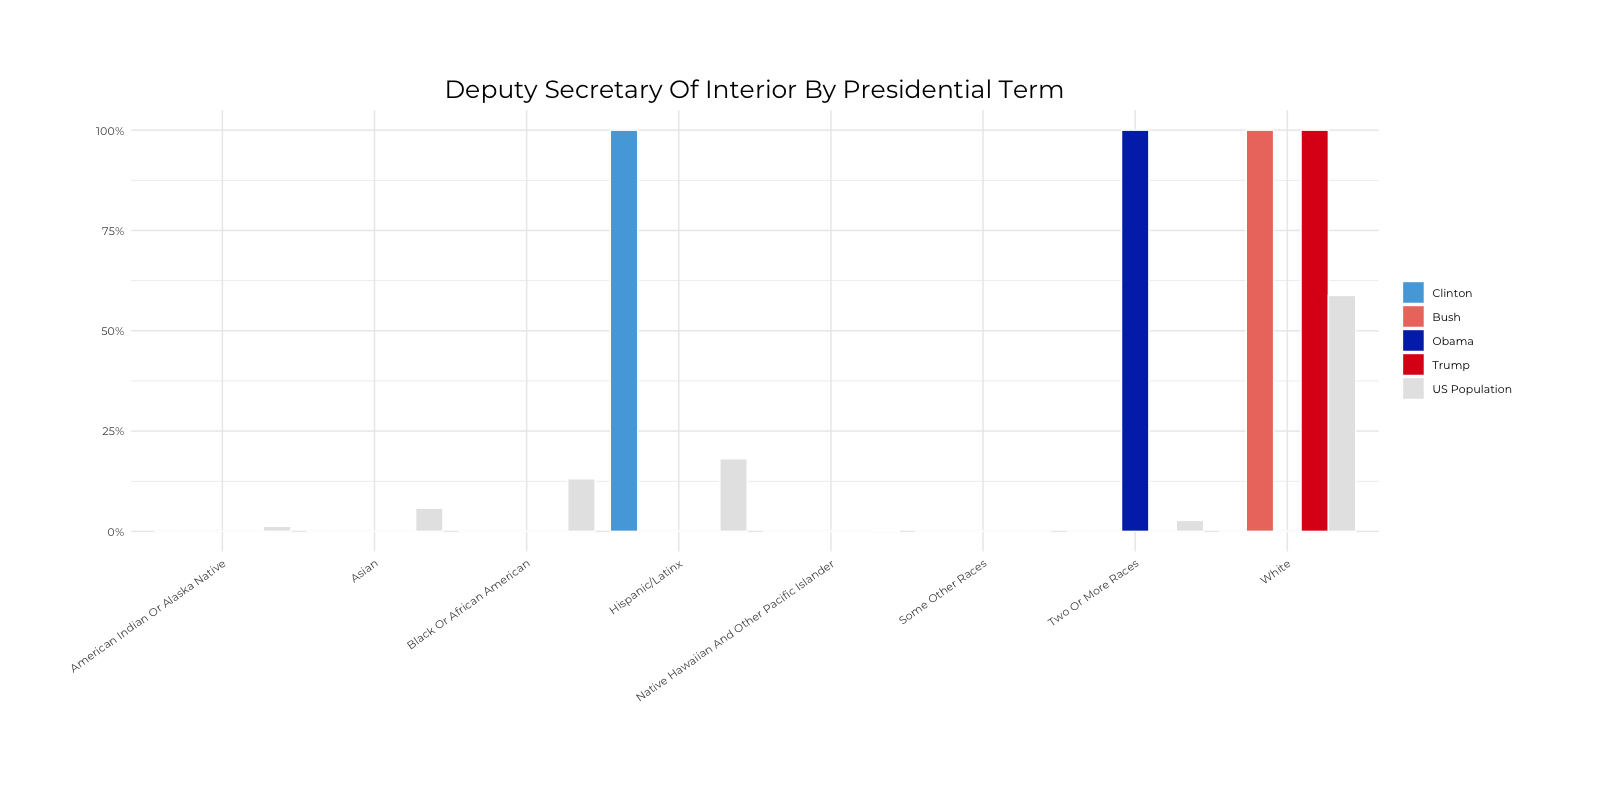 Graph about Racial Composition Comparison of Deputy Secretary of Interior by Presidential Terms. More detailed text description below.